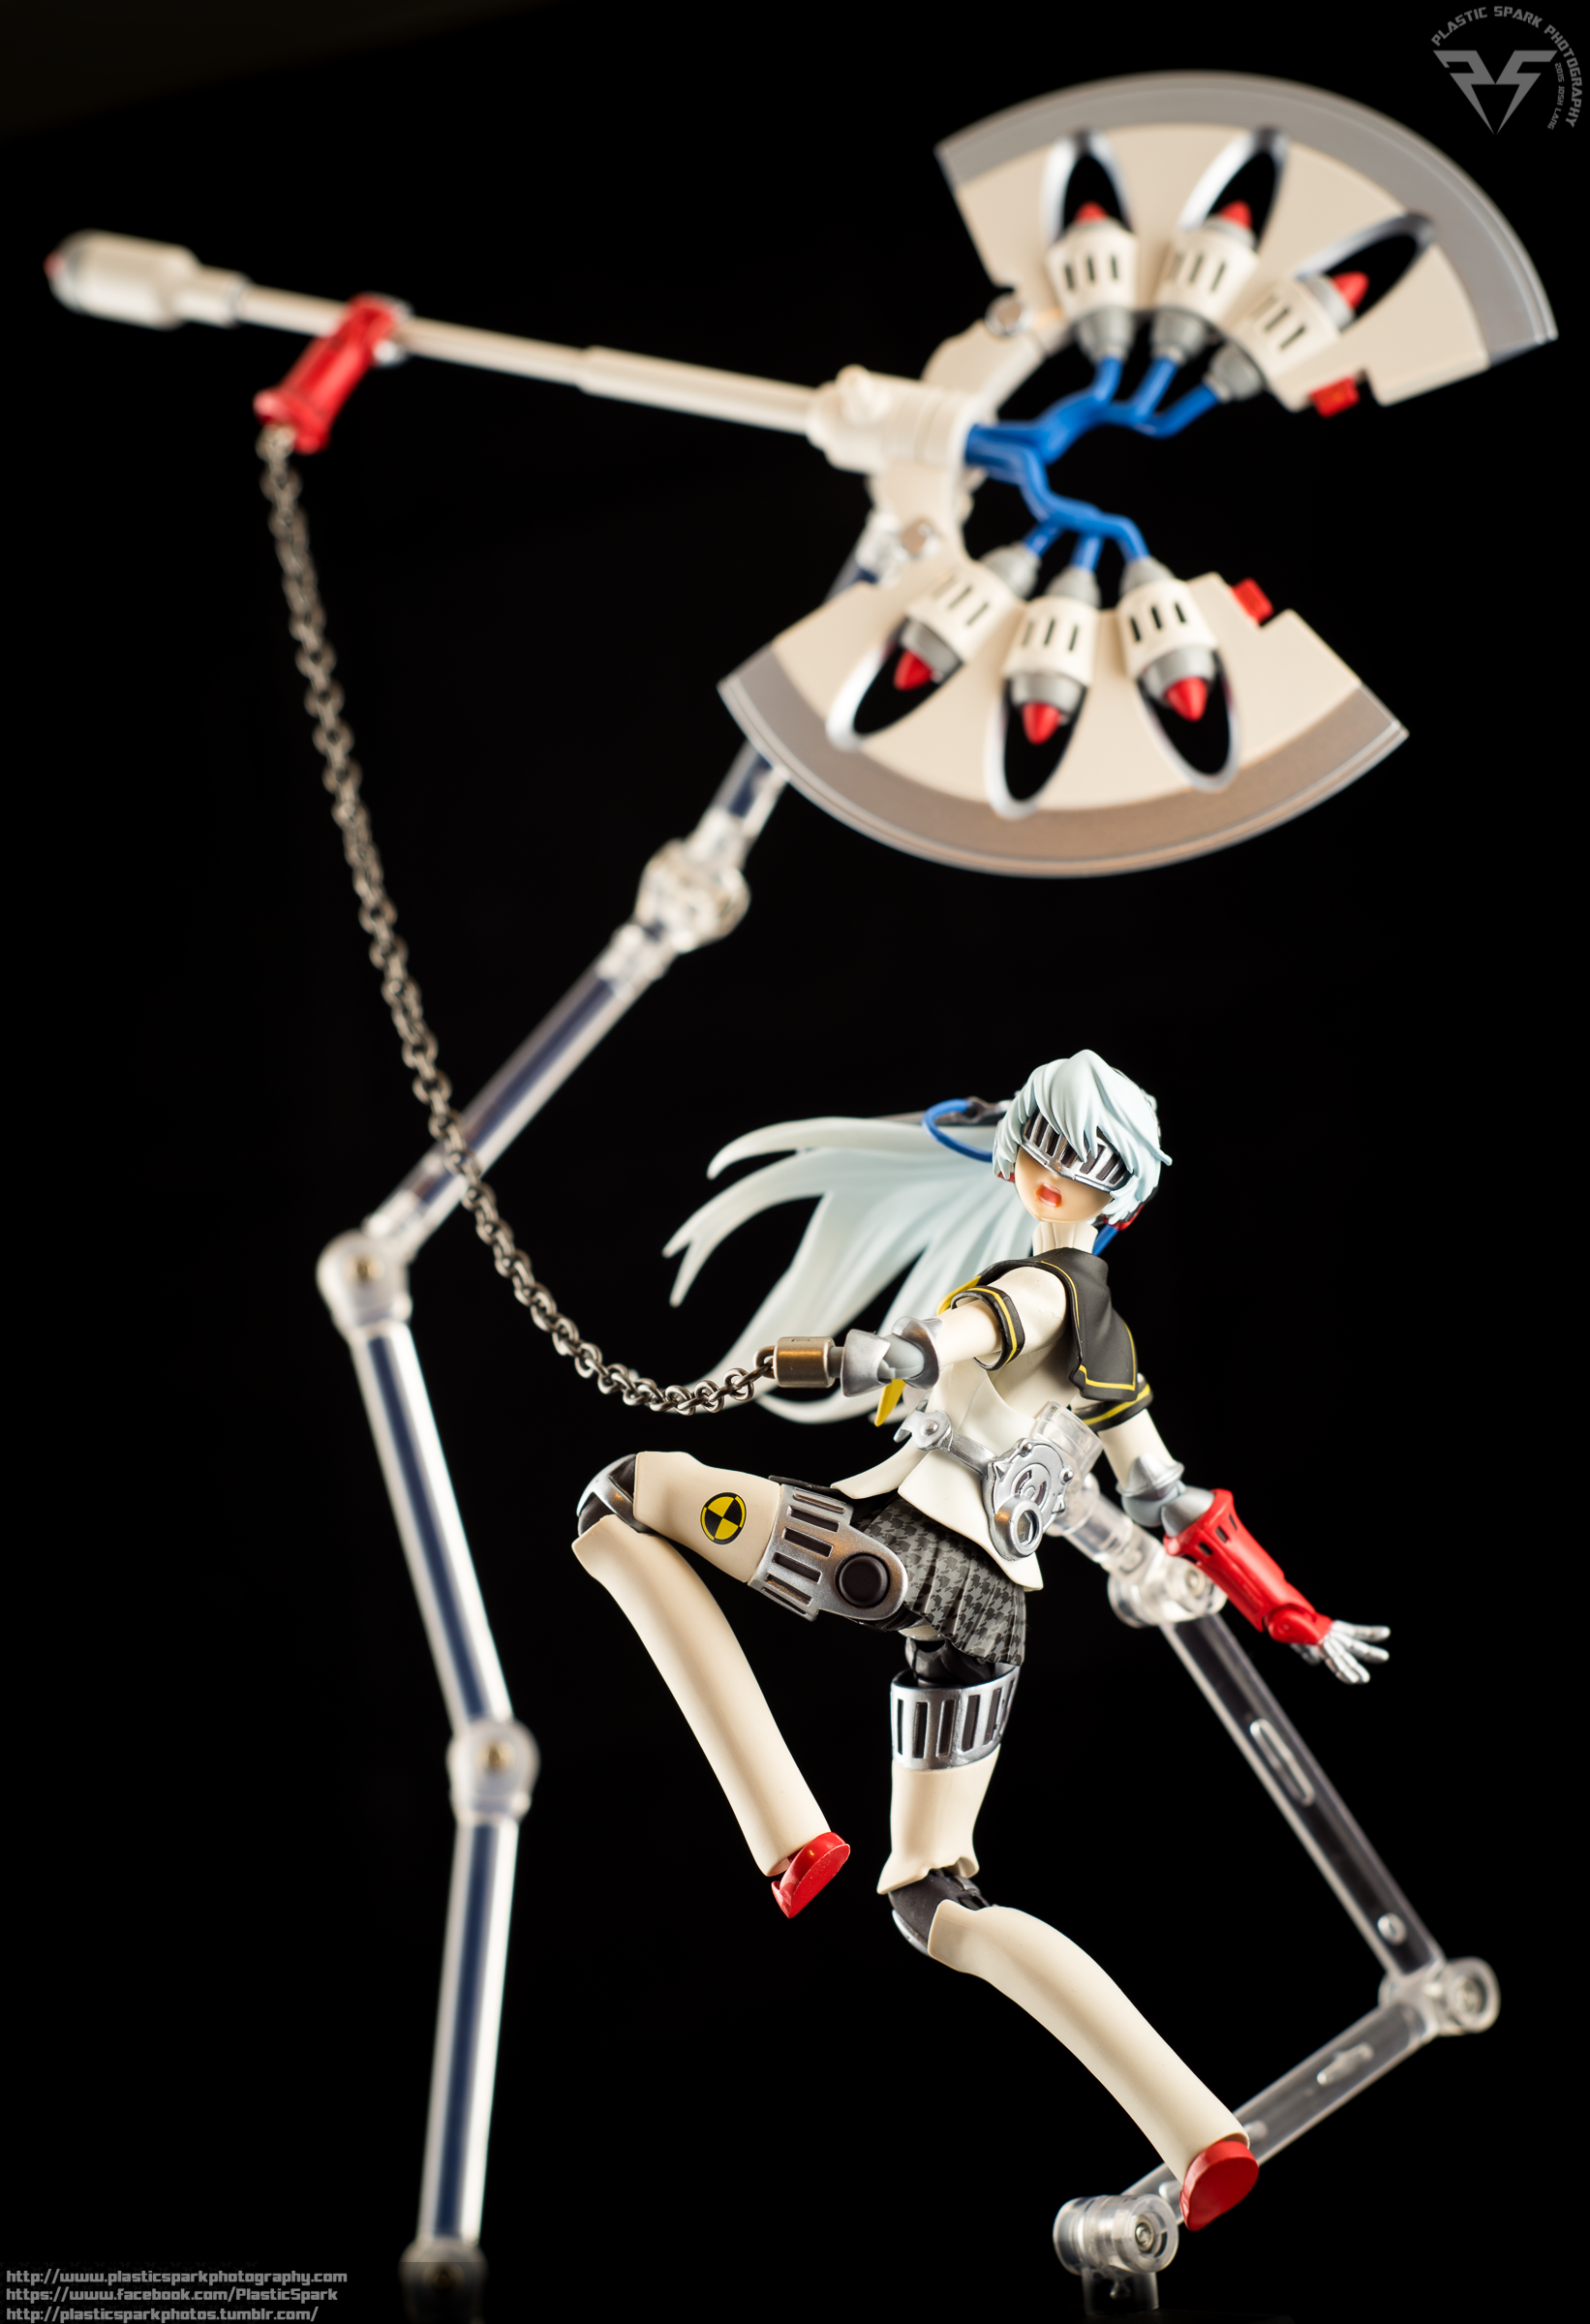 Figma-Labrys-(13-of-33).png